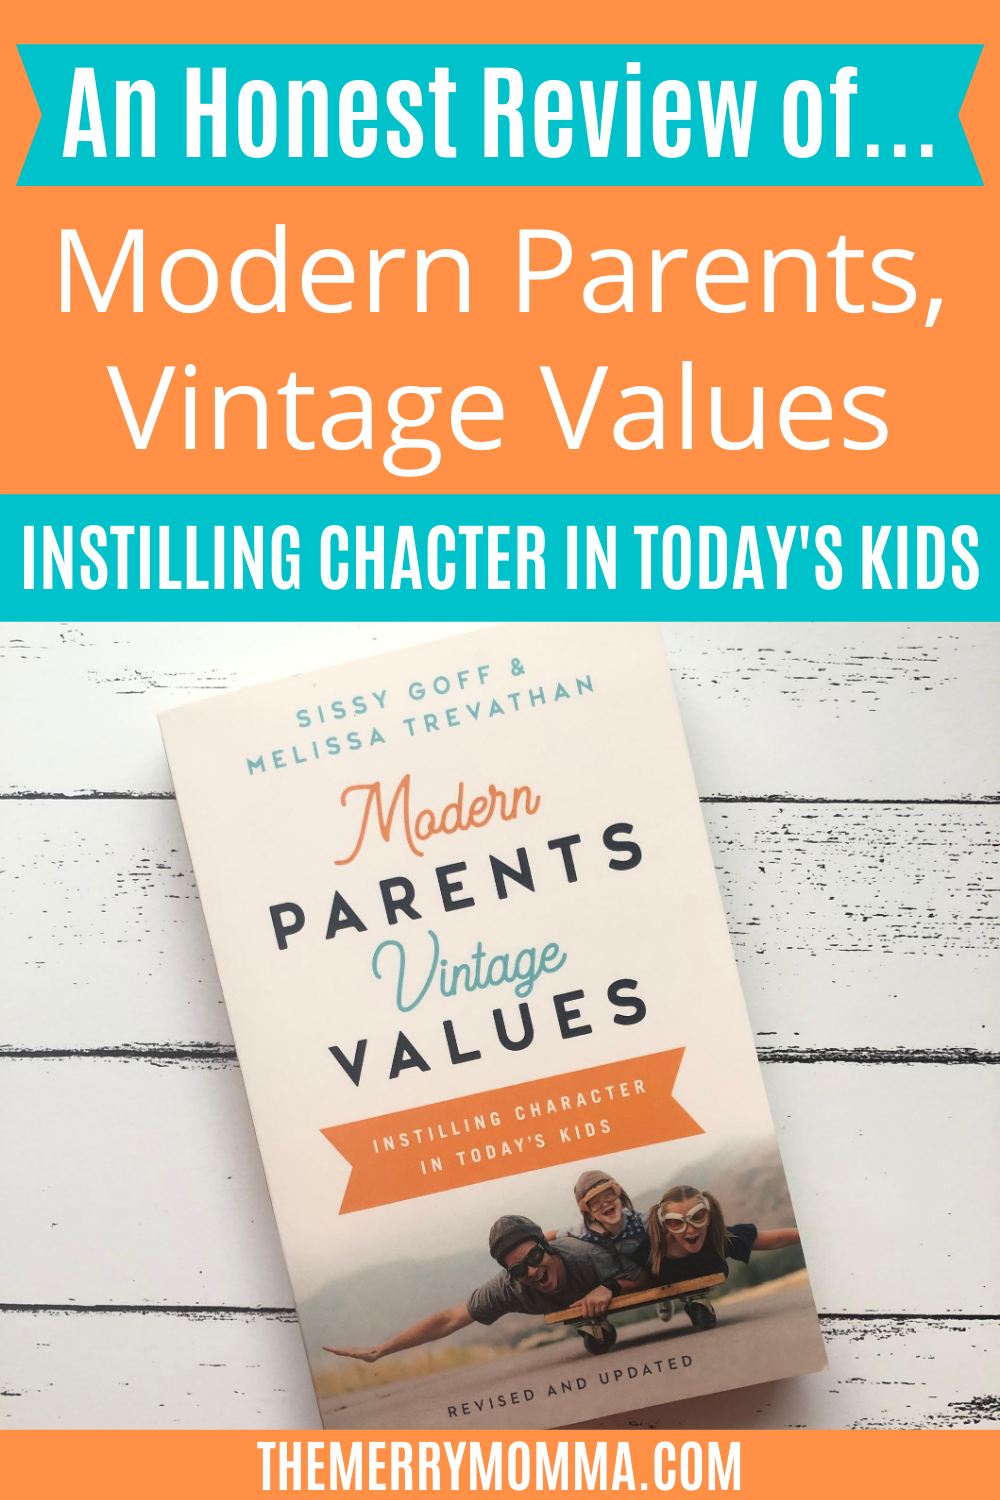 An Honest Review of... Modern Parents, Vintage Values PIN